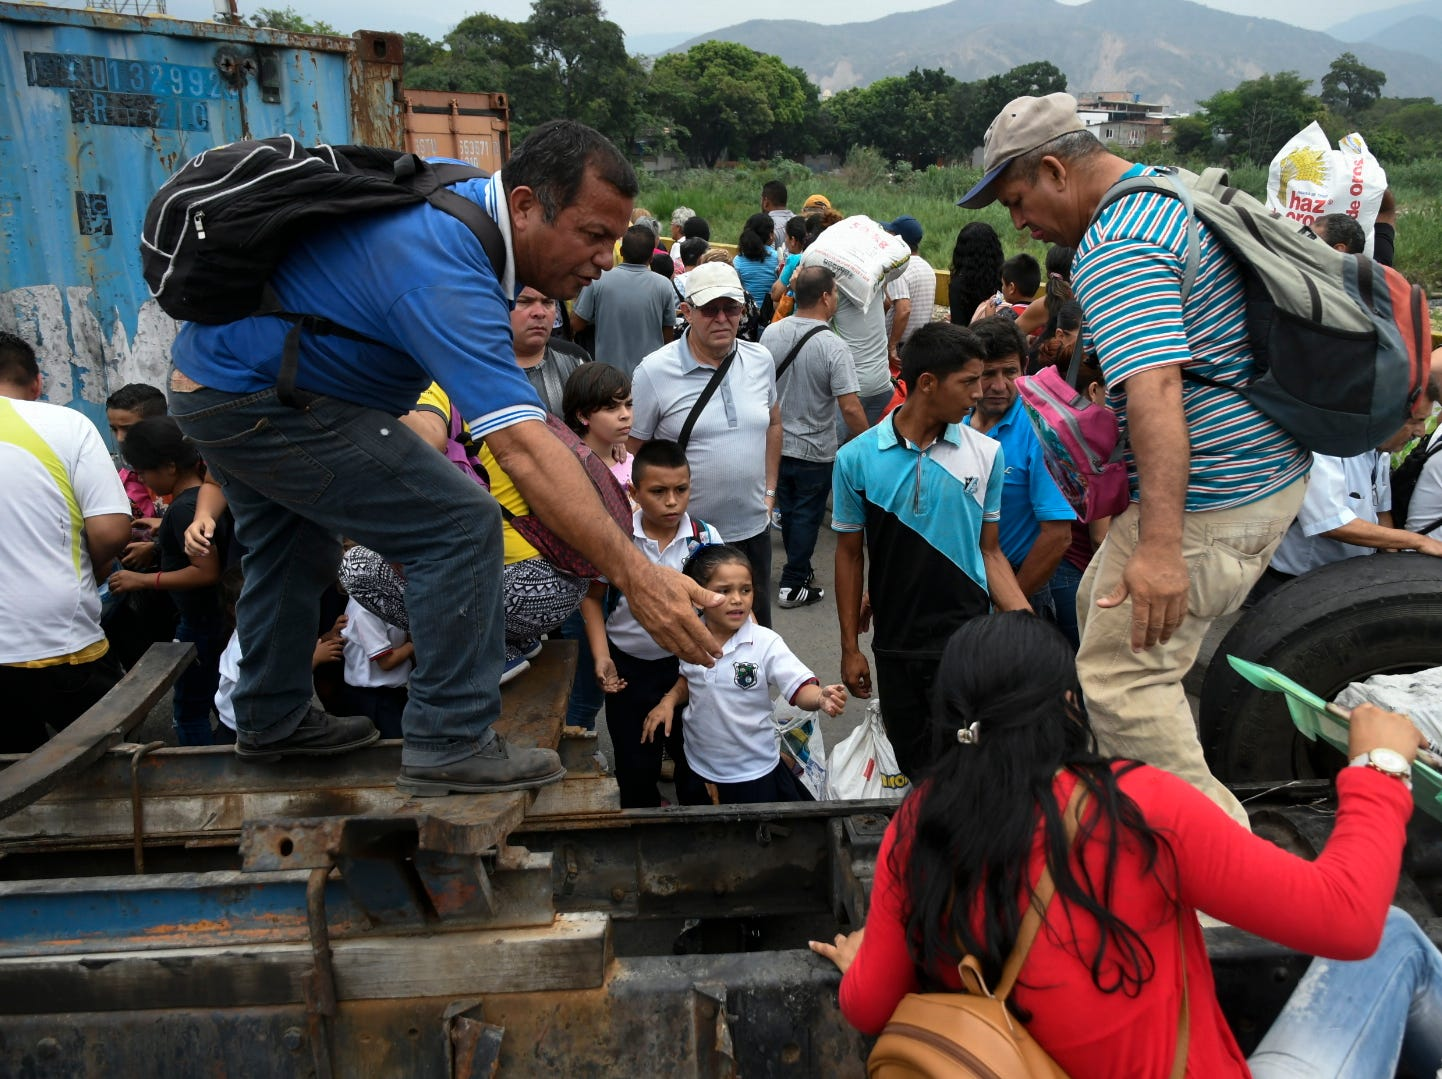 People cross the Simon Bolivar international bridge from Colombia into San Antonio del Tachira in Venezuela passing over the wreckage of a truck which was burned down during February 23rd protests, and containers placed by the Venezuelan government to block the entrance of the humanitarian aid to the country, on March 29, 2019. A group of approximately 100 people pushed the barriers placed by the Venezuelan Bolivarian Guard in the border town of San Antonio del Tachira and entered the country despite the restriction that allows only students, elderly people and patients under medical treatment in Colombia to cross the border.